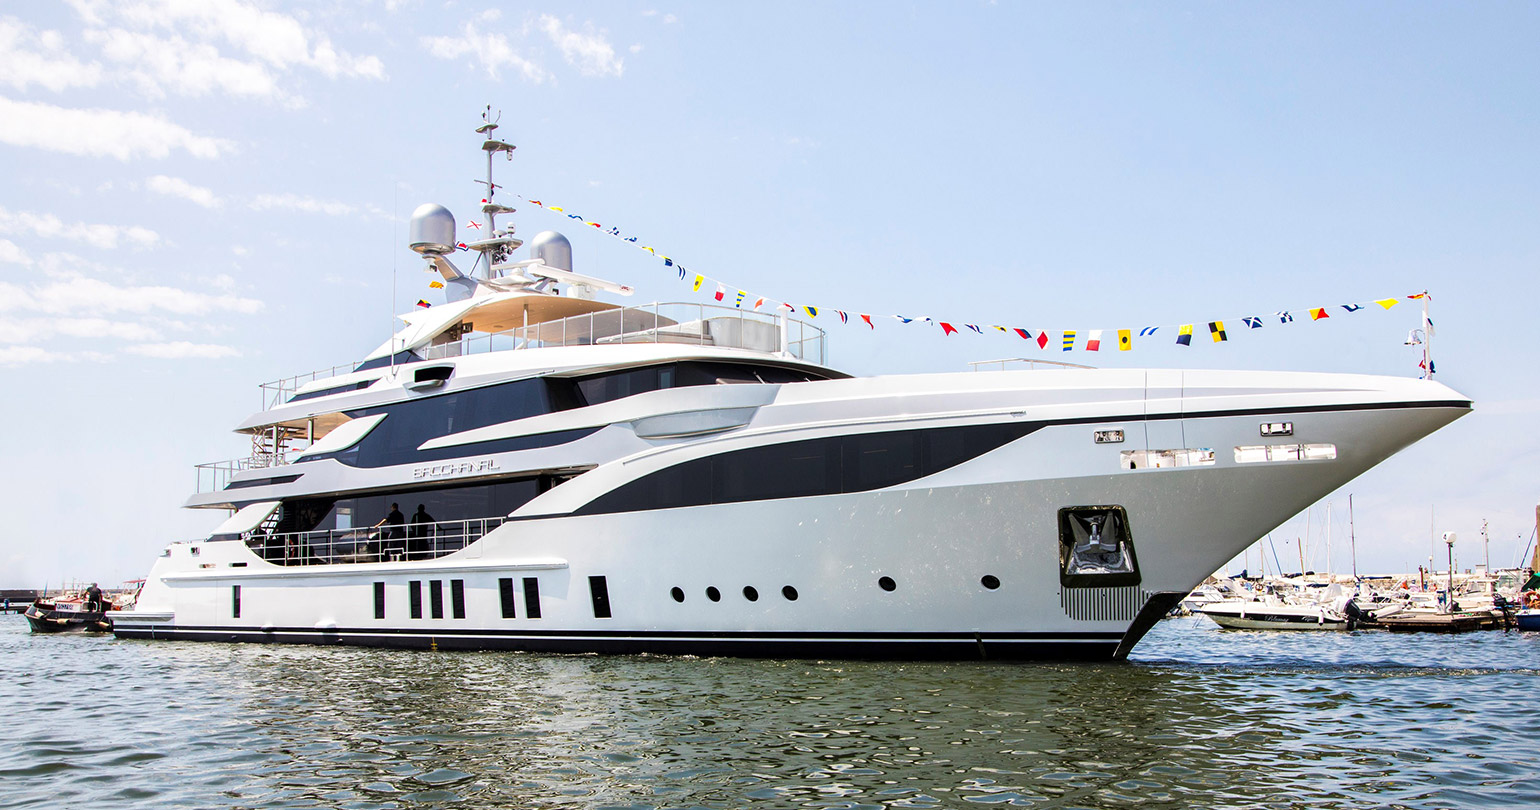 New Superyacht by Benetti: Bacchanal